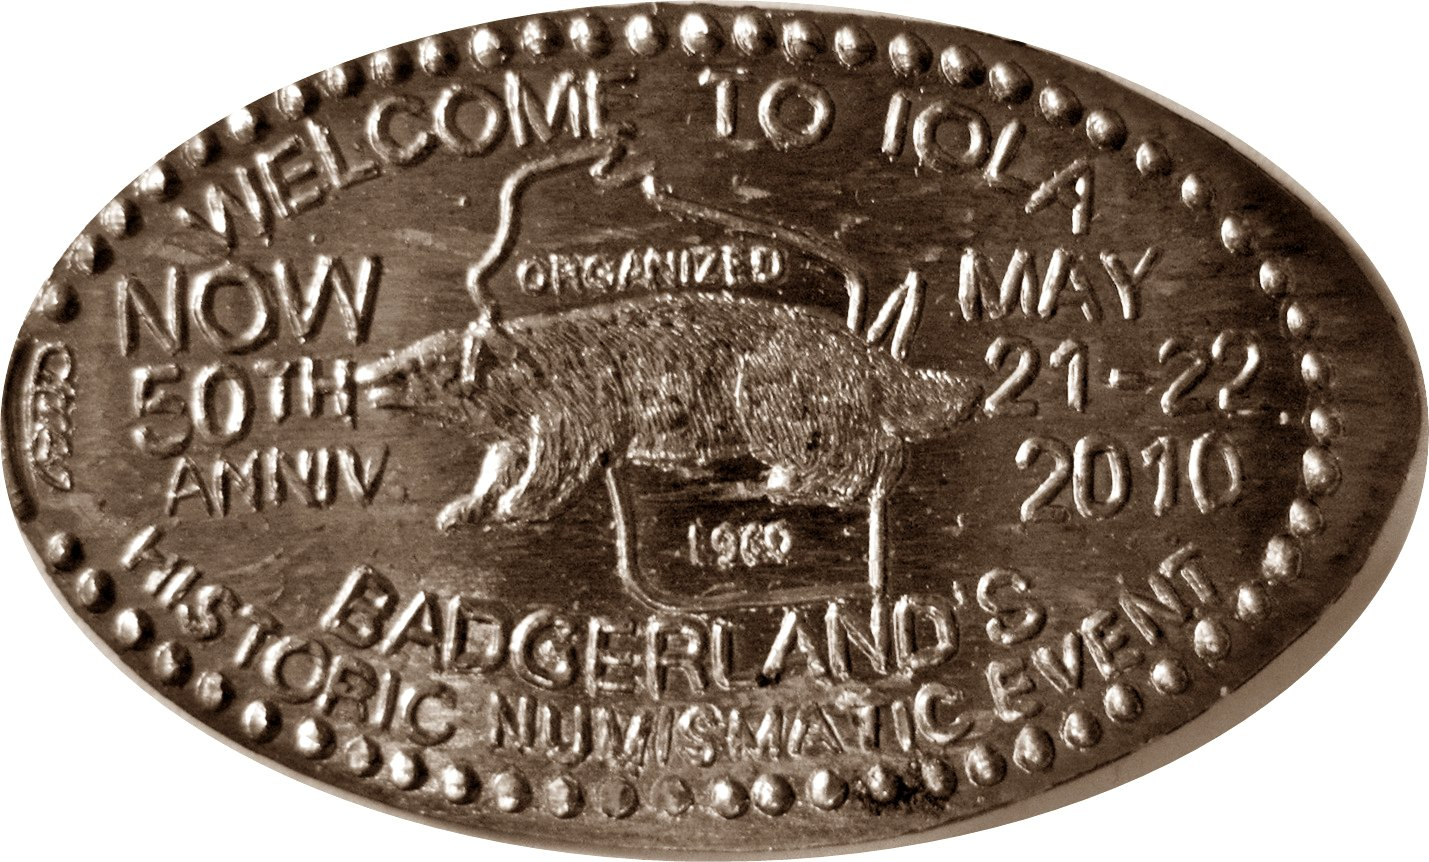 2010 Iola 50th Anniversary May 21-22  Copper Elongated